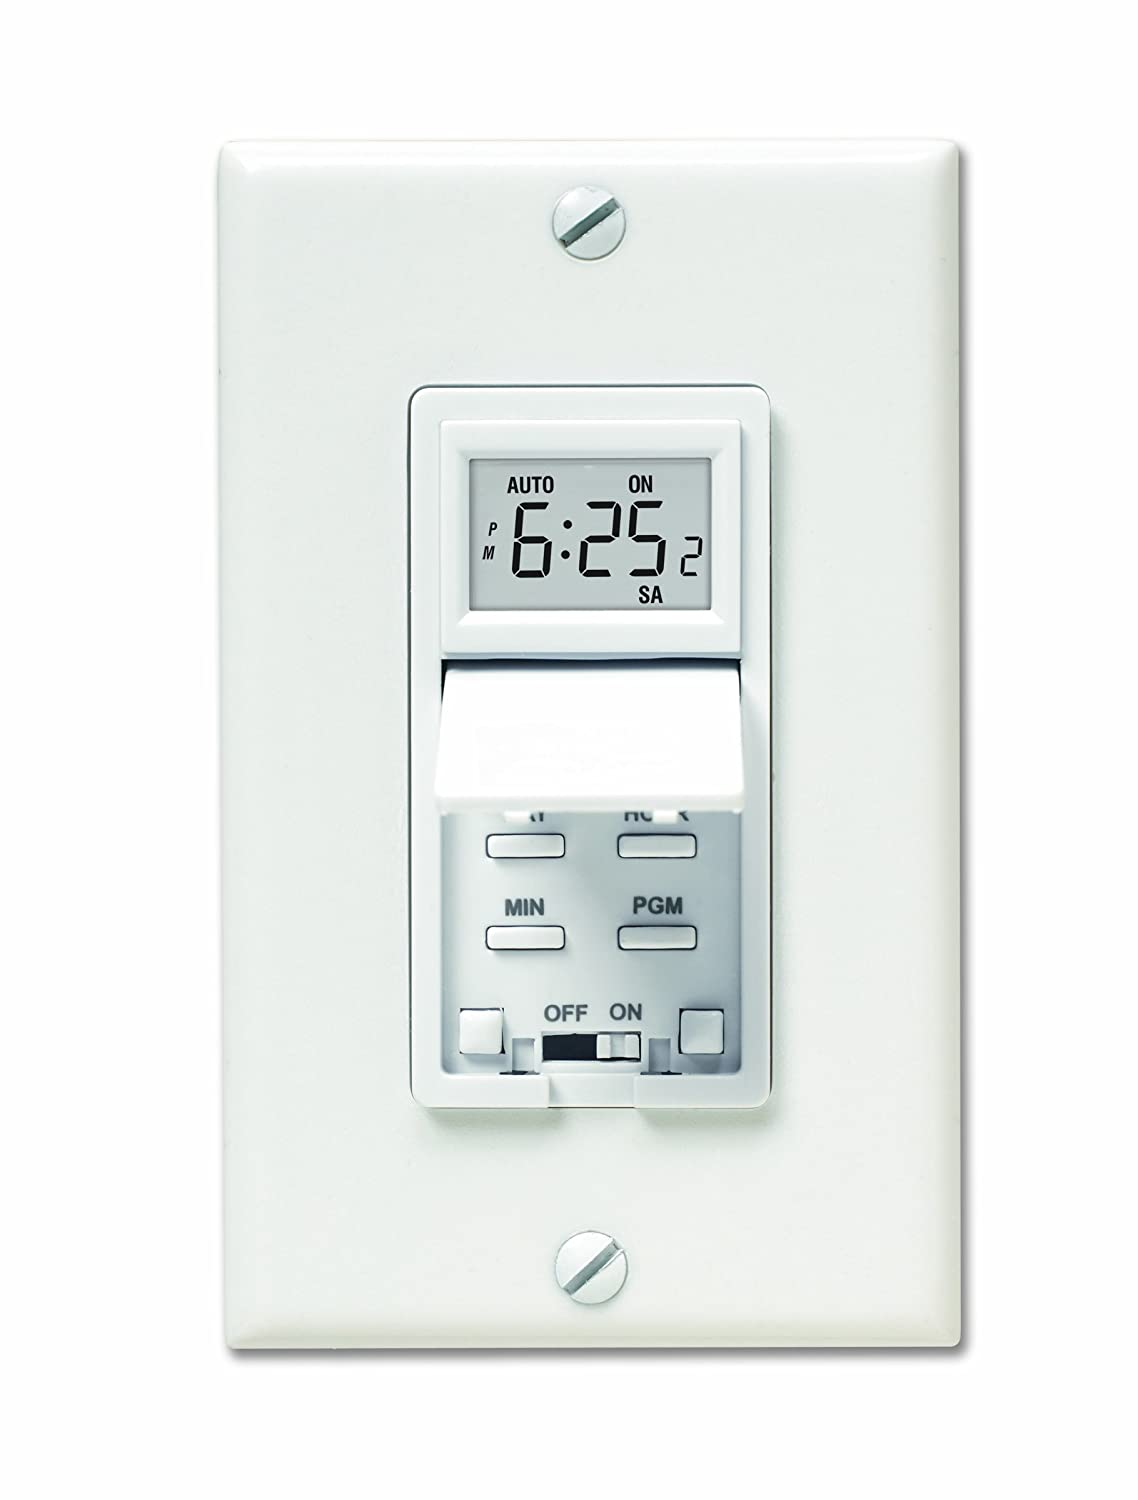 717oiYCarPL._SL1500_ amazon com honeywell rpls530a 7 day programmable timer switch Appliance Switch Honeywell at reclaimingppi.co